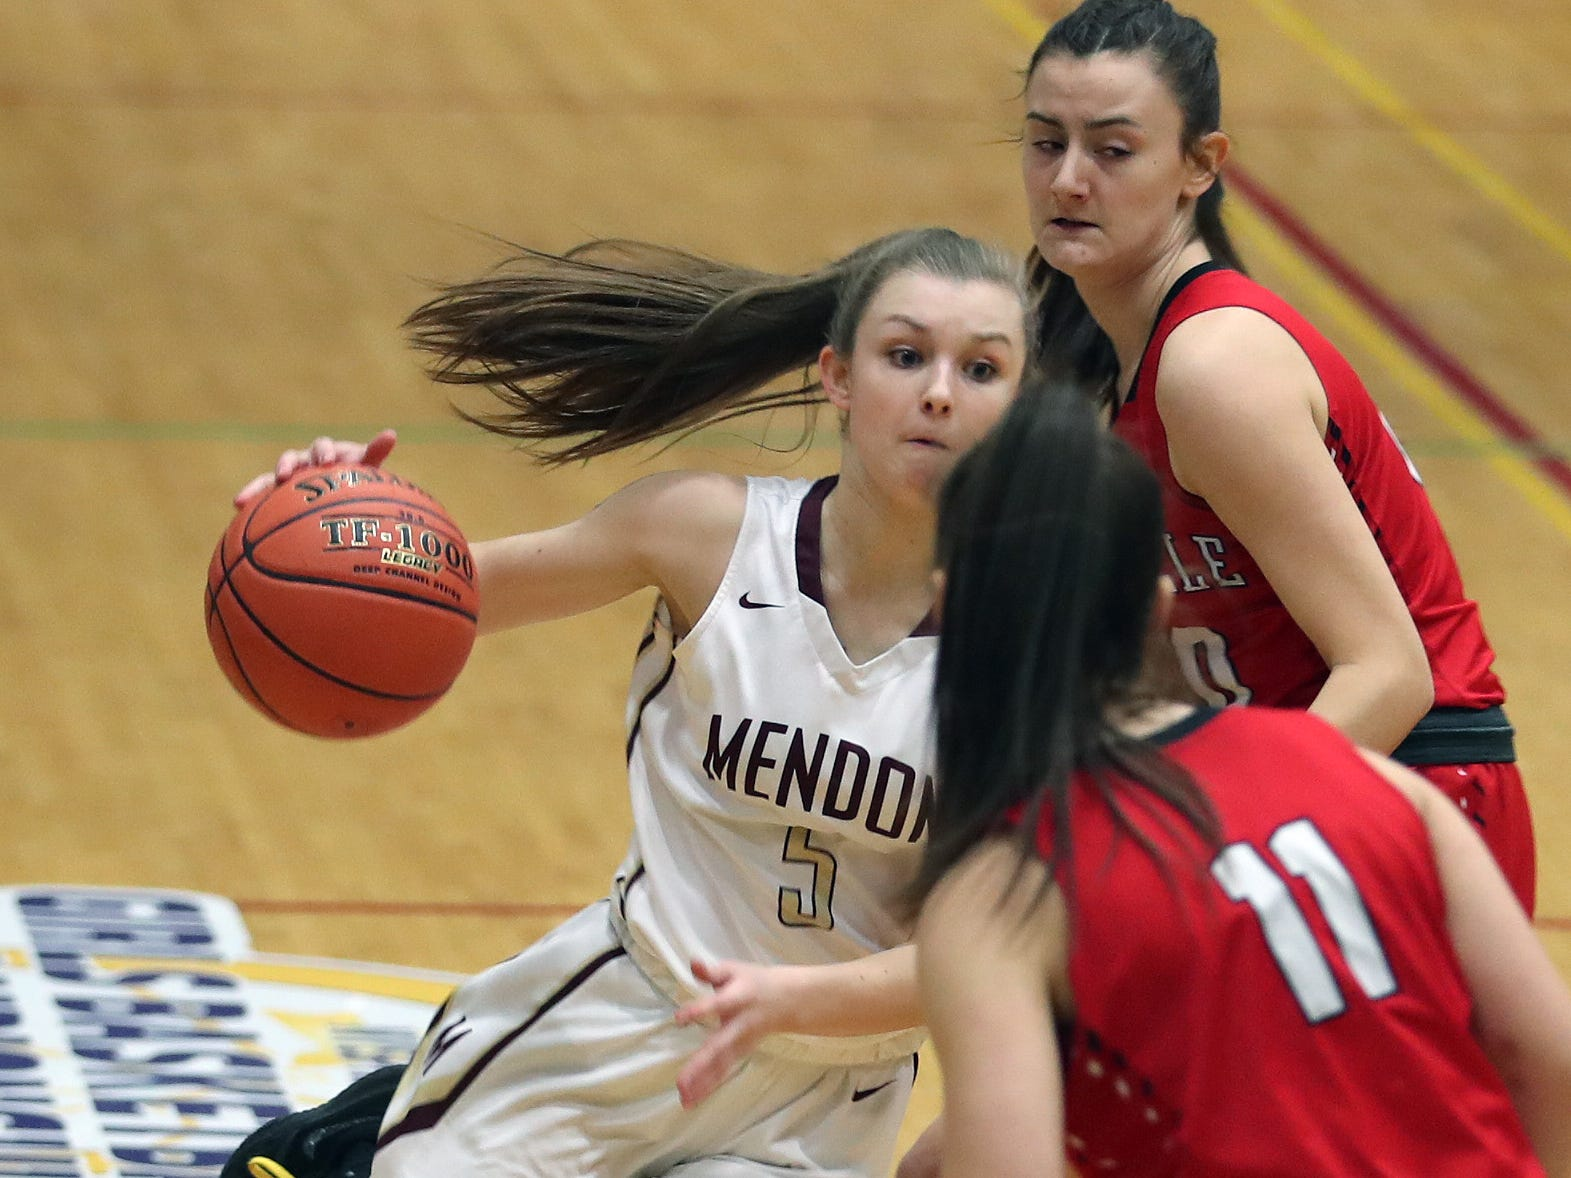 Pittsford Mendon's Courtney Naugle (5) drives to the basket in front Jamesville-DeWitt defenders during the girls Class A state semifinal at Hudson Valley Community College in Troy March 16, 2019.